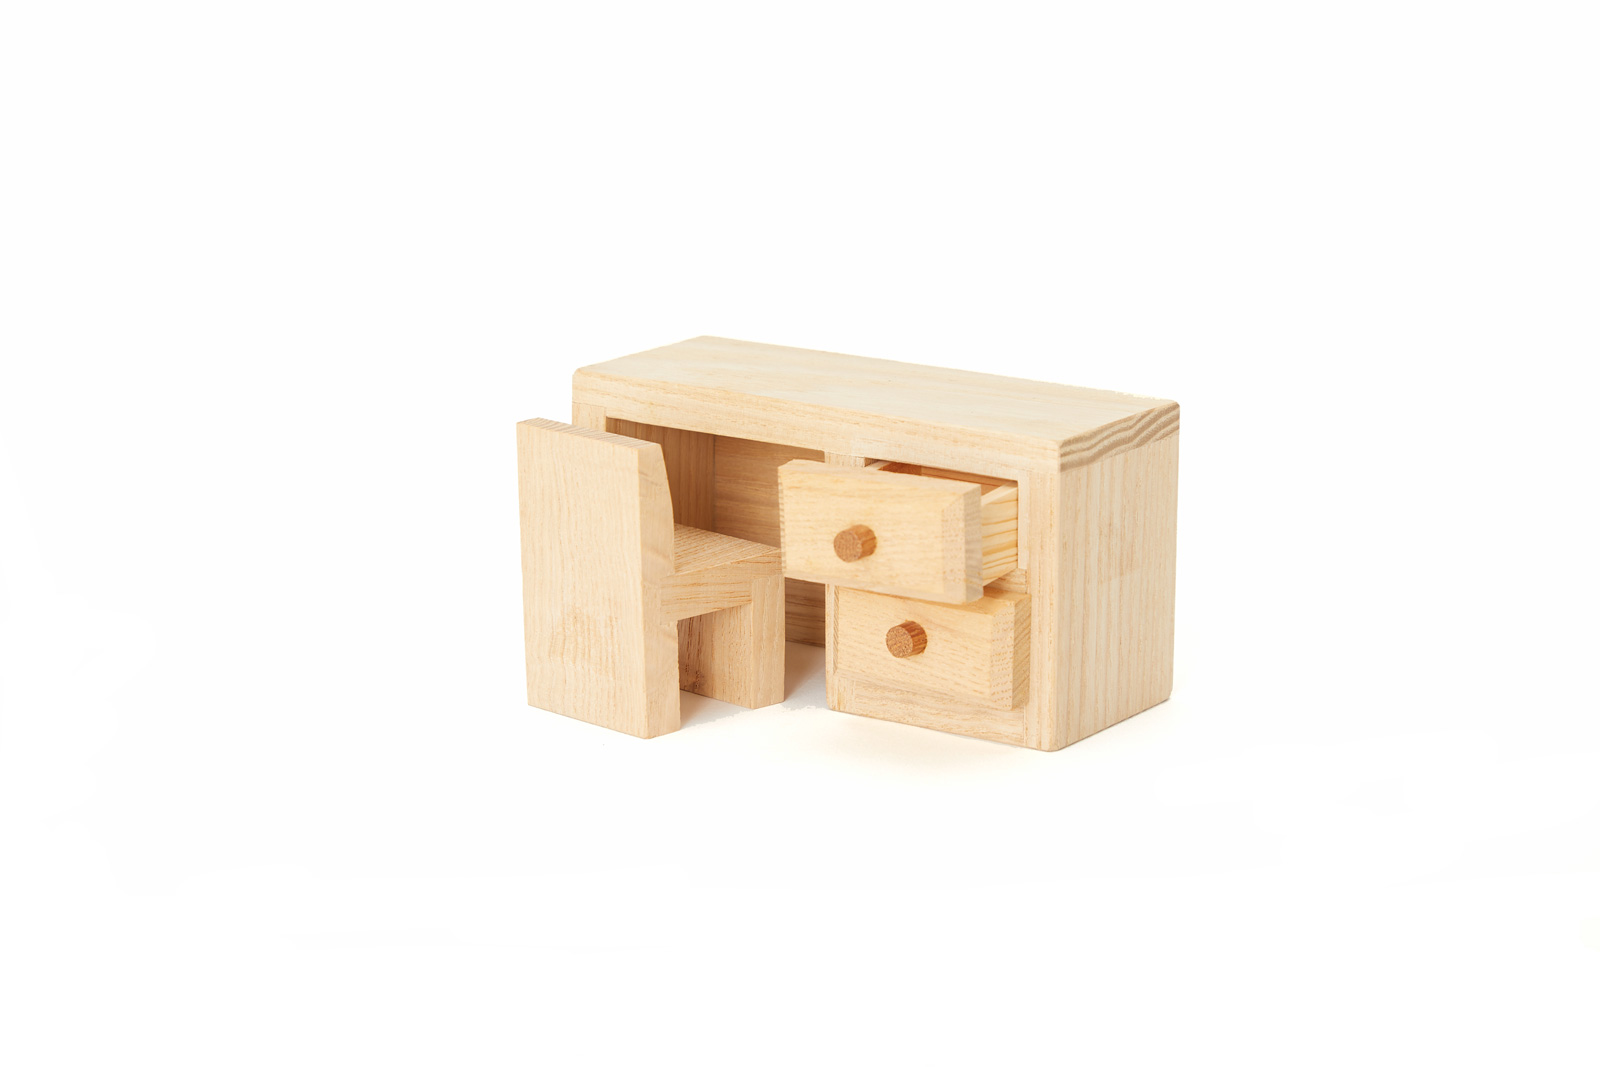 Toy Desk (All-Natural Wood)